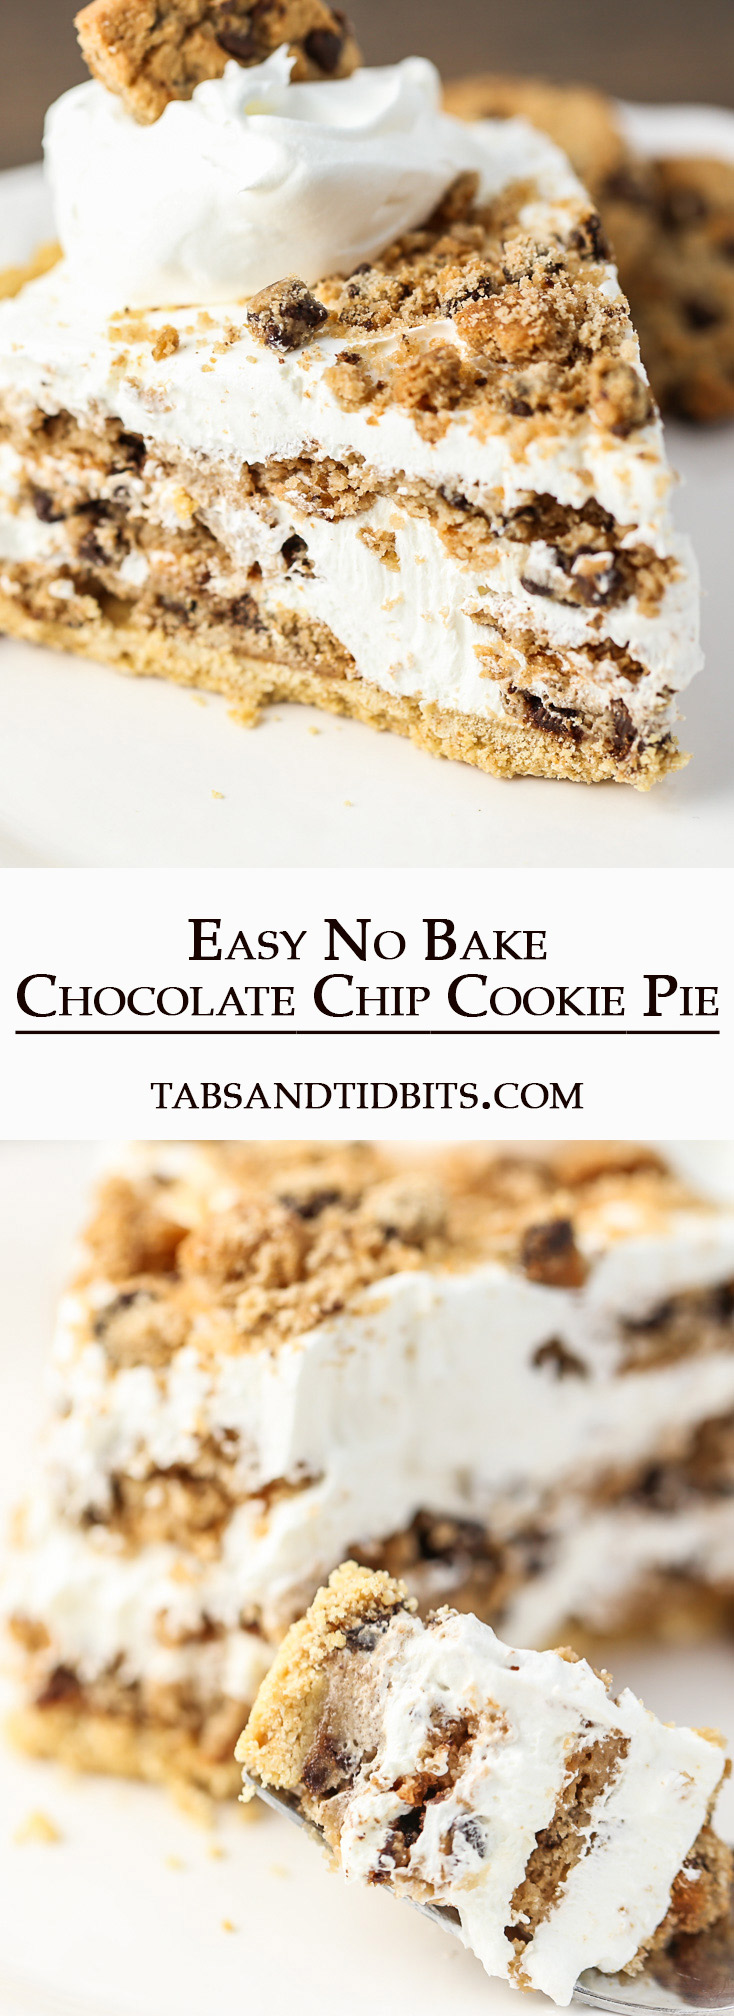 Four ingredients make this Easy No Bake Chocolate Chip Cookie Pie!